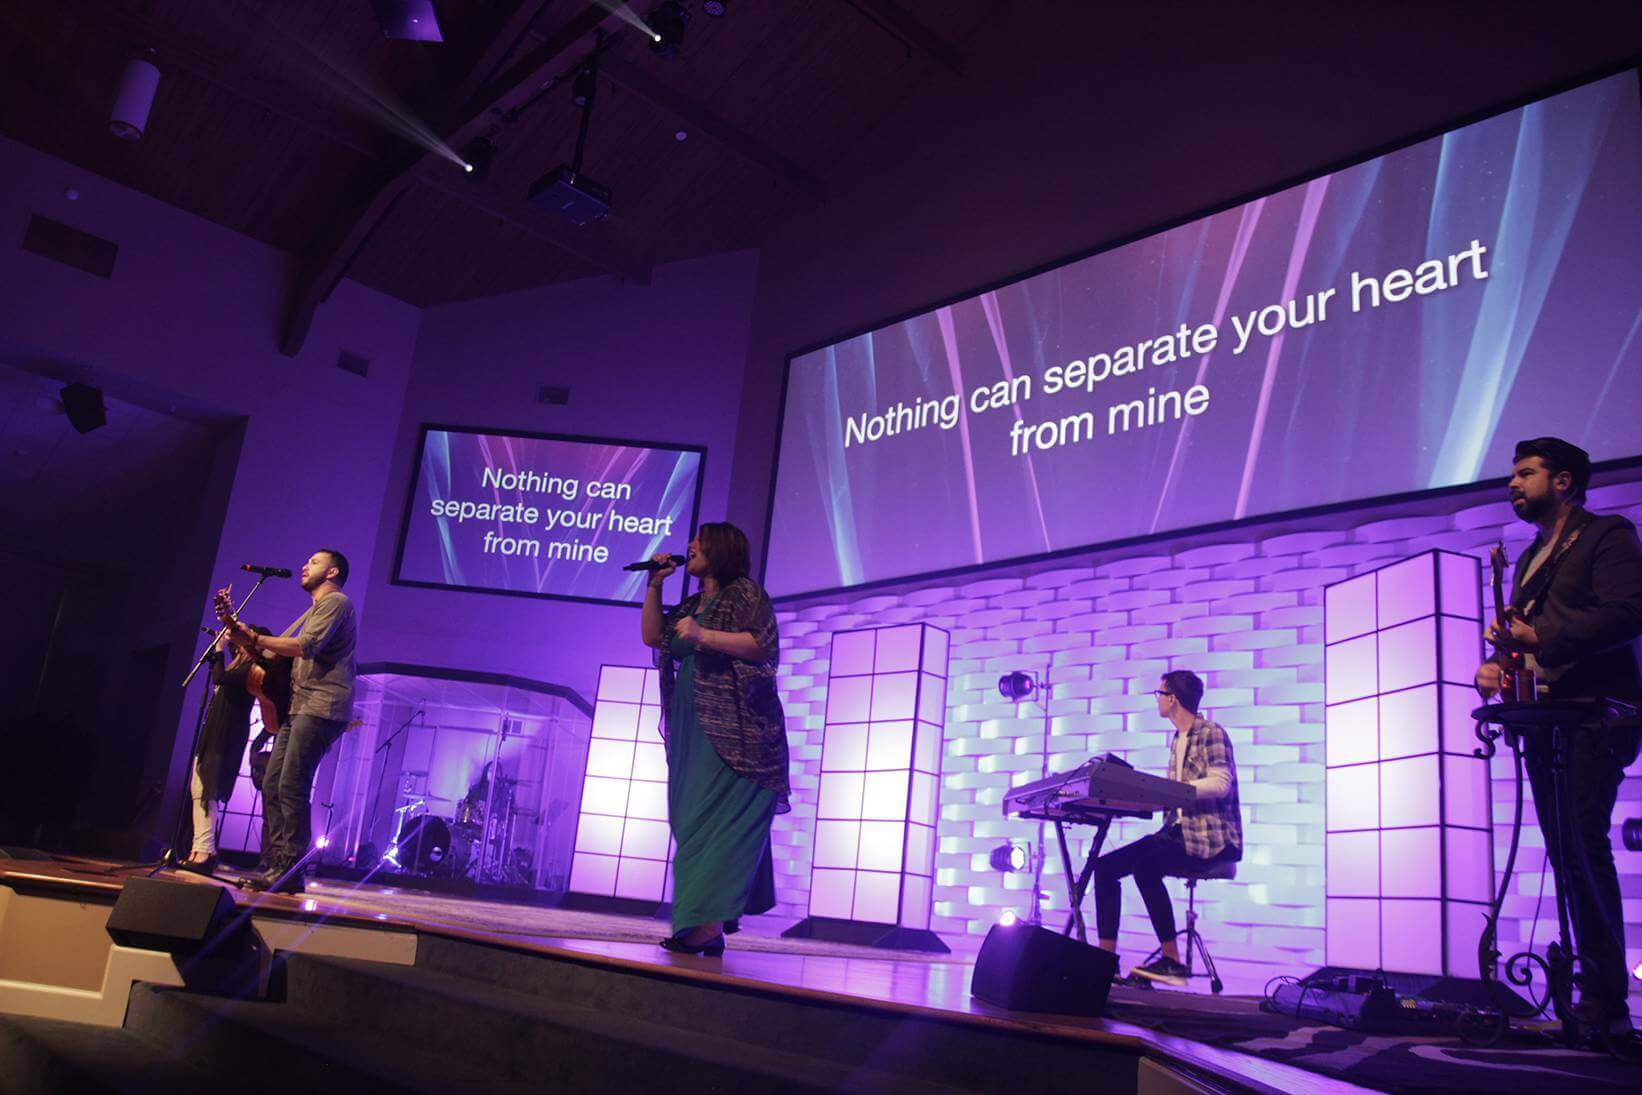 Celebration Church in The Woodlands, TX